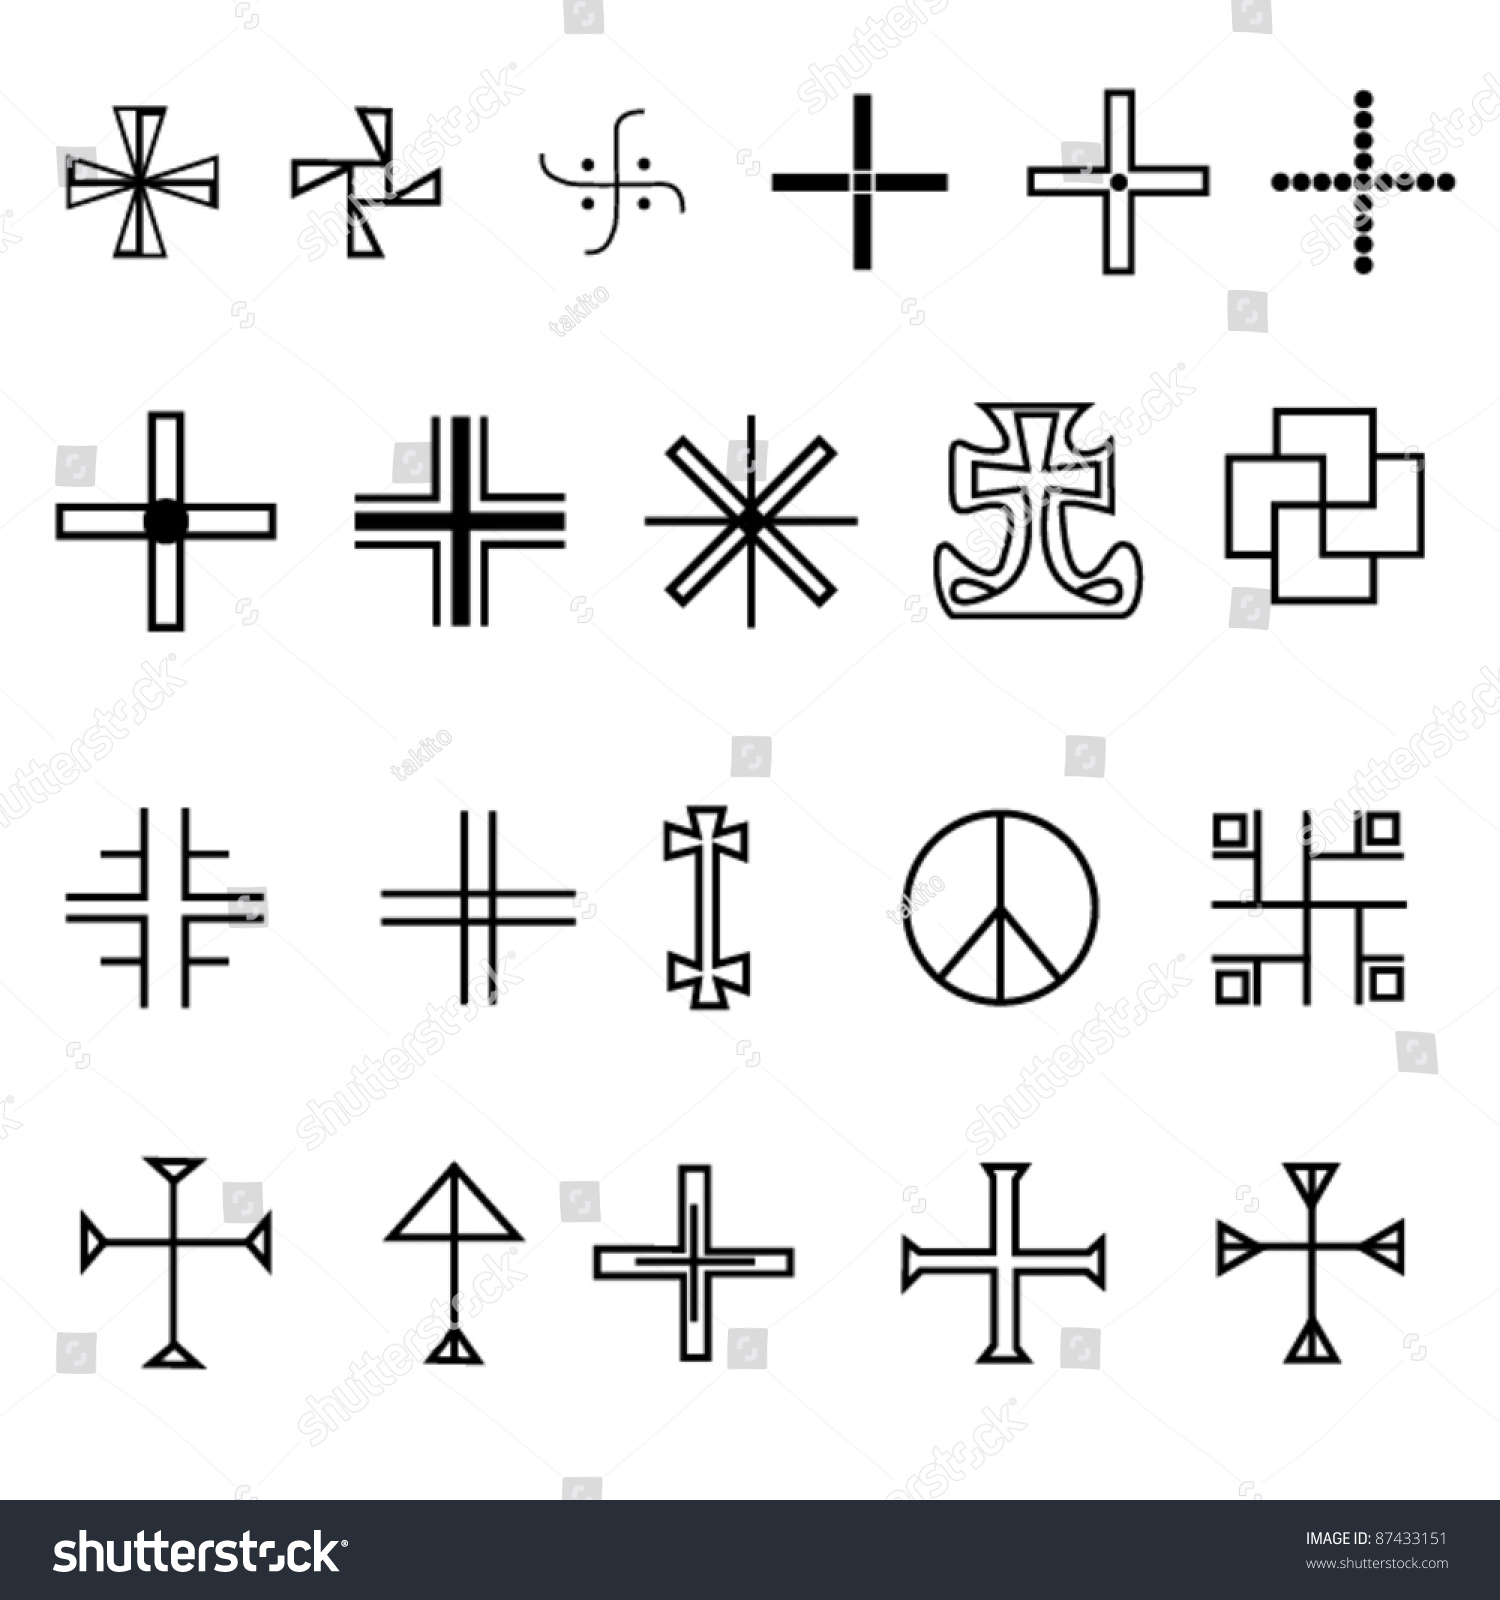 royalty free set of crosses in different styles u2026 87433151 stock